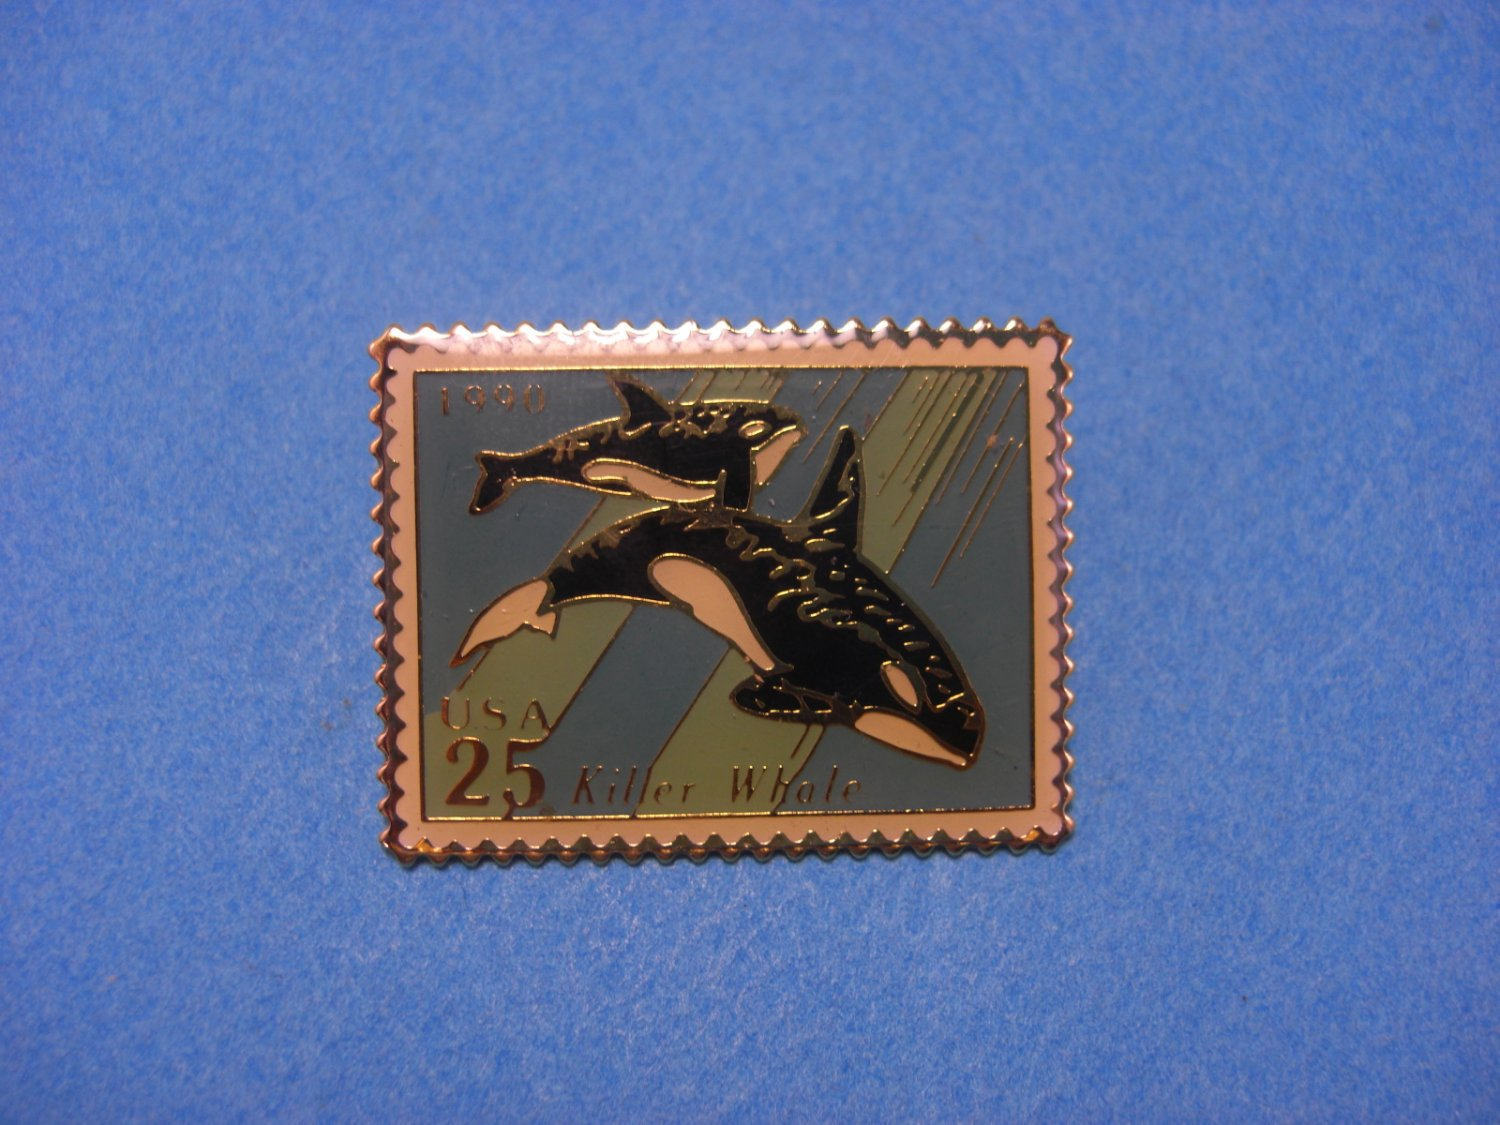 USPS Killer Whale 25c Postage Stamp Pin